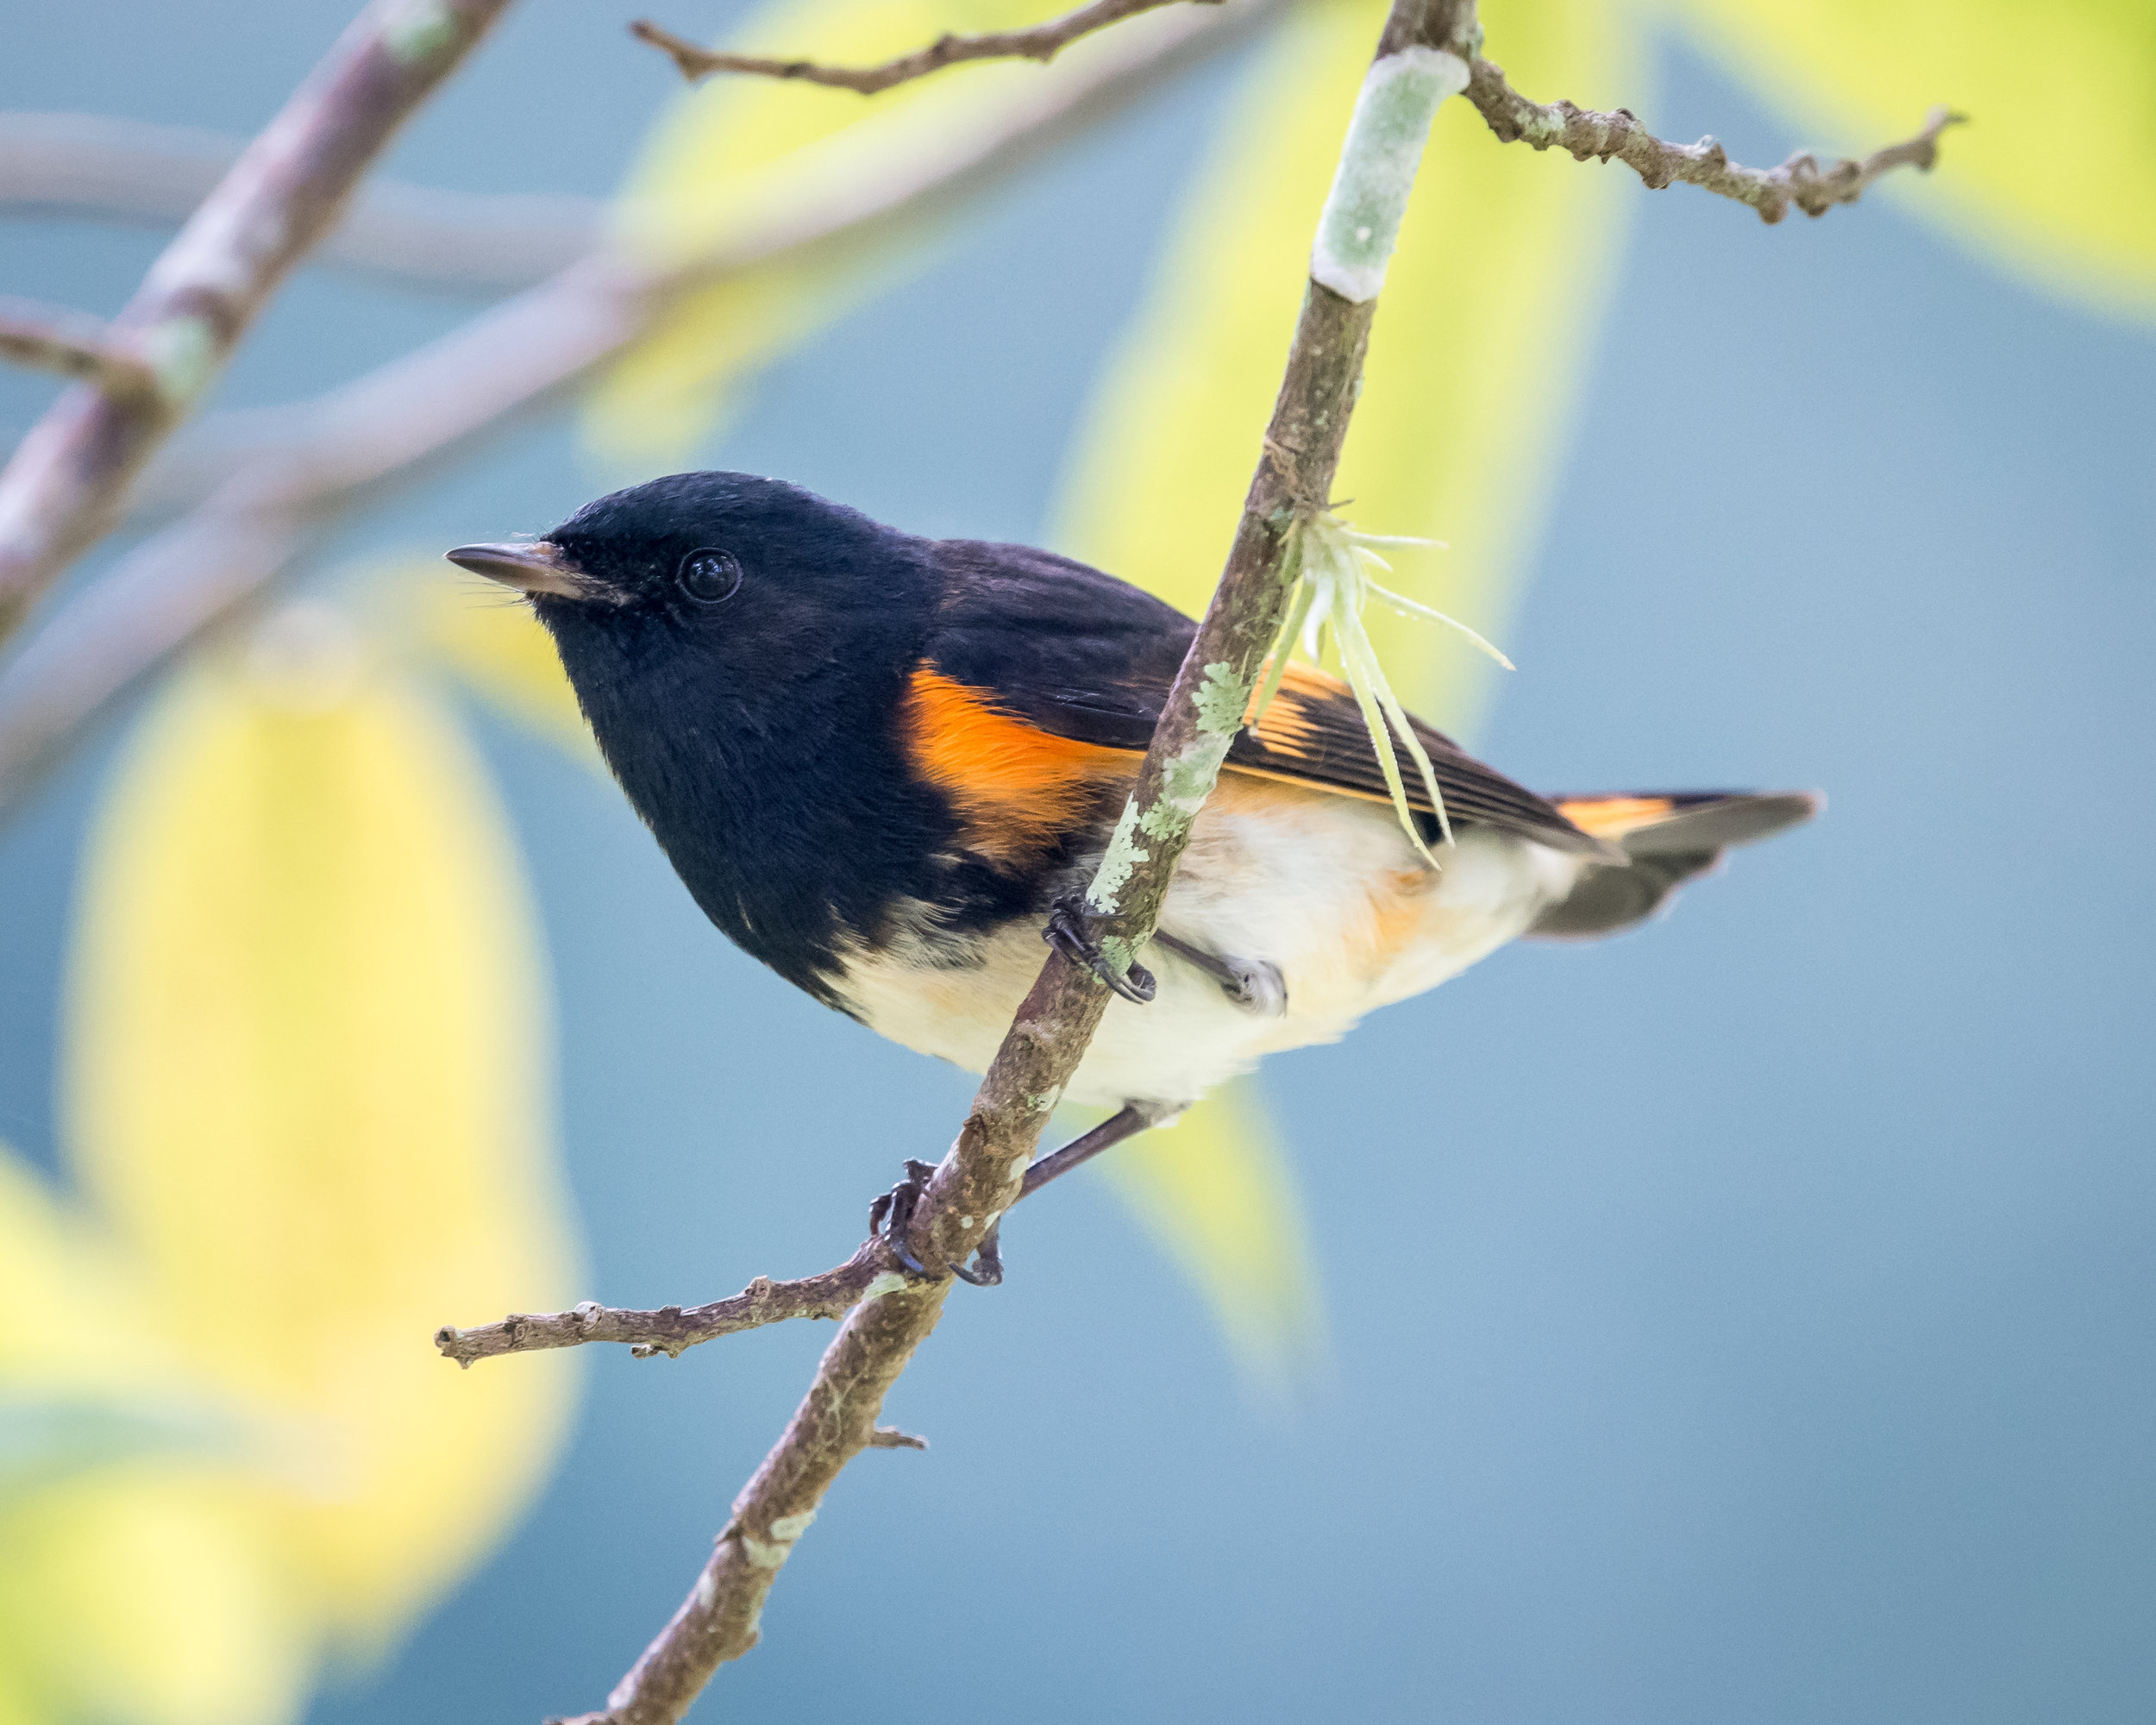 American redstart, photo by Becky Matsubara